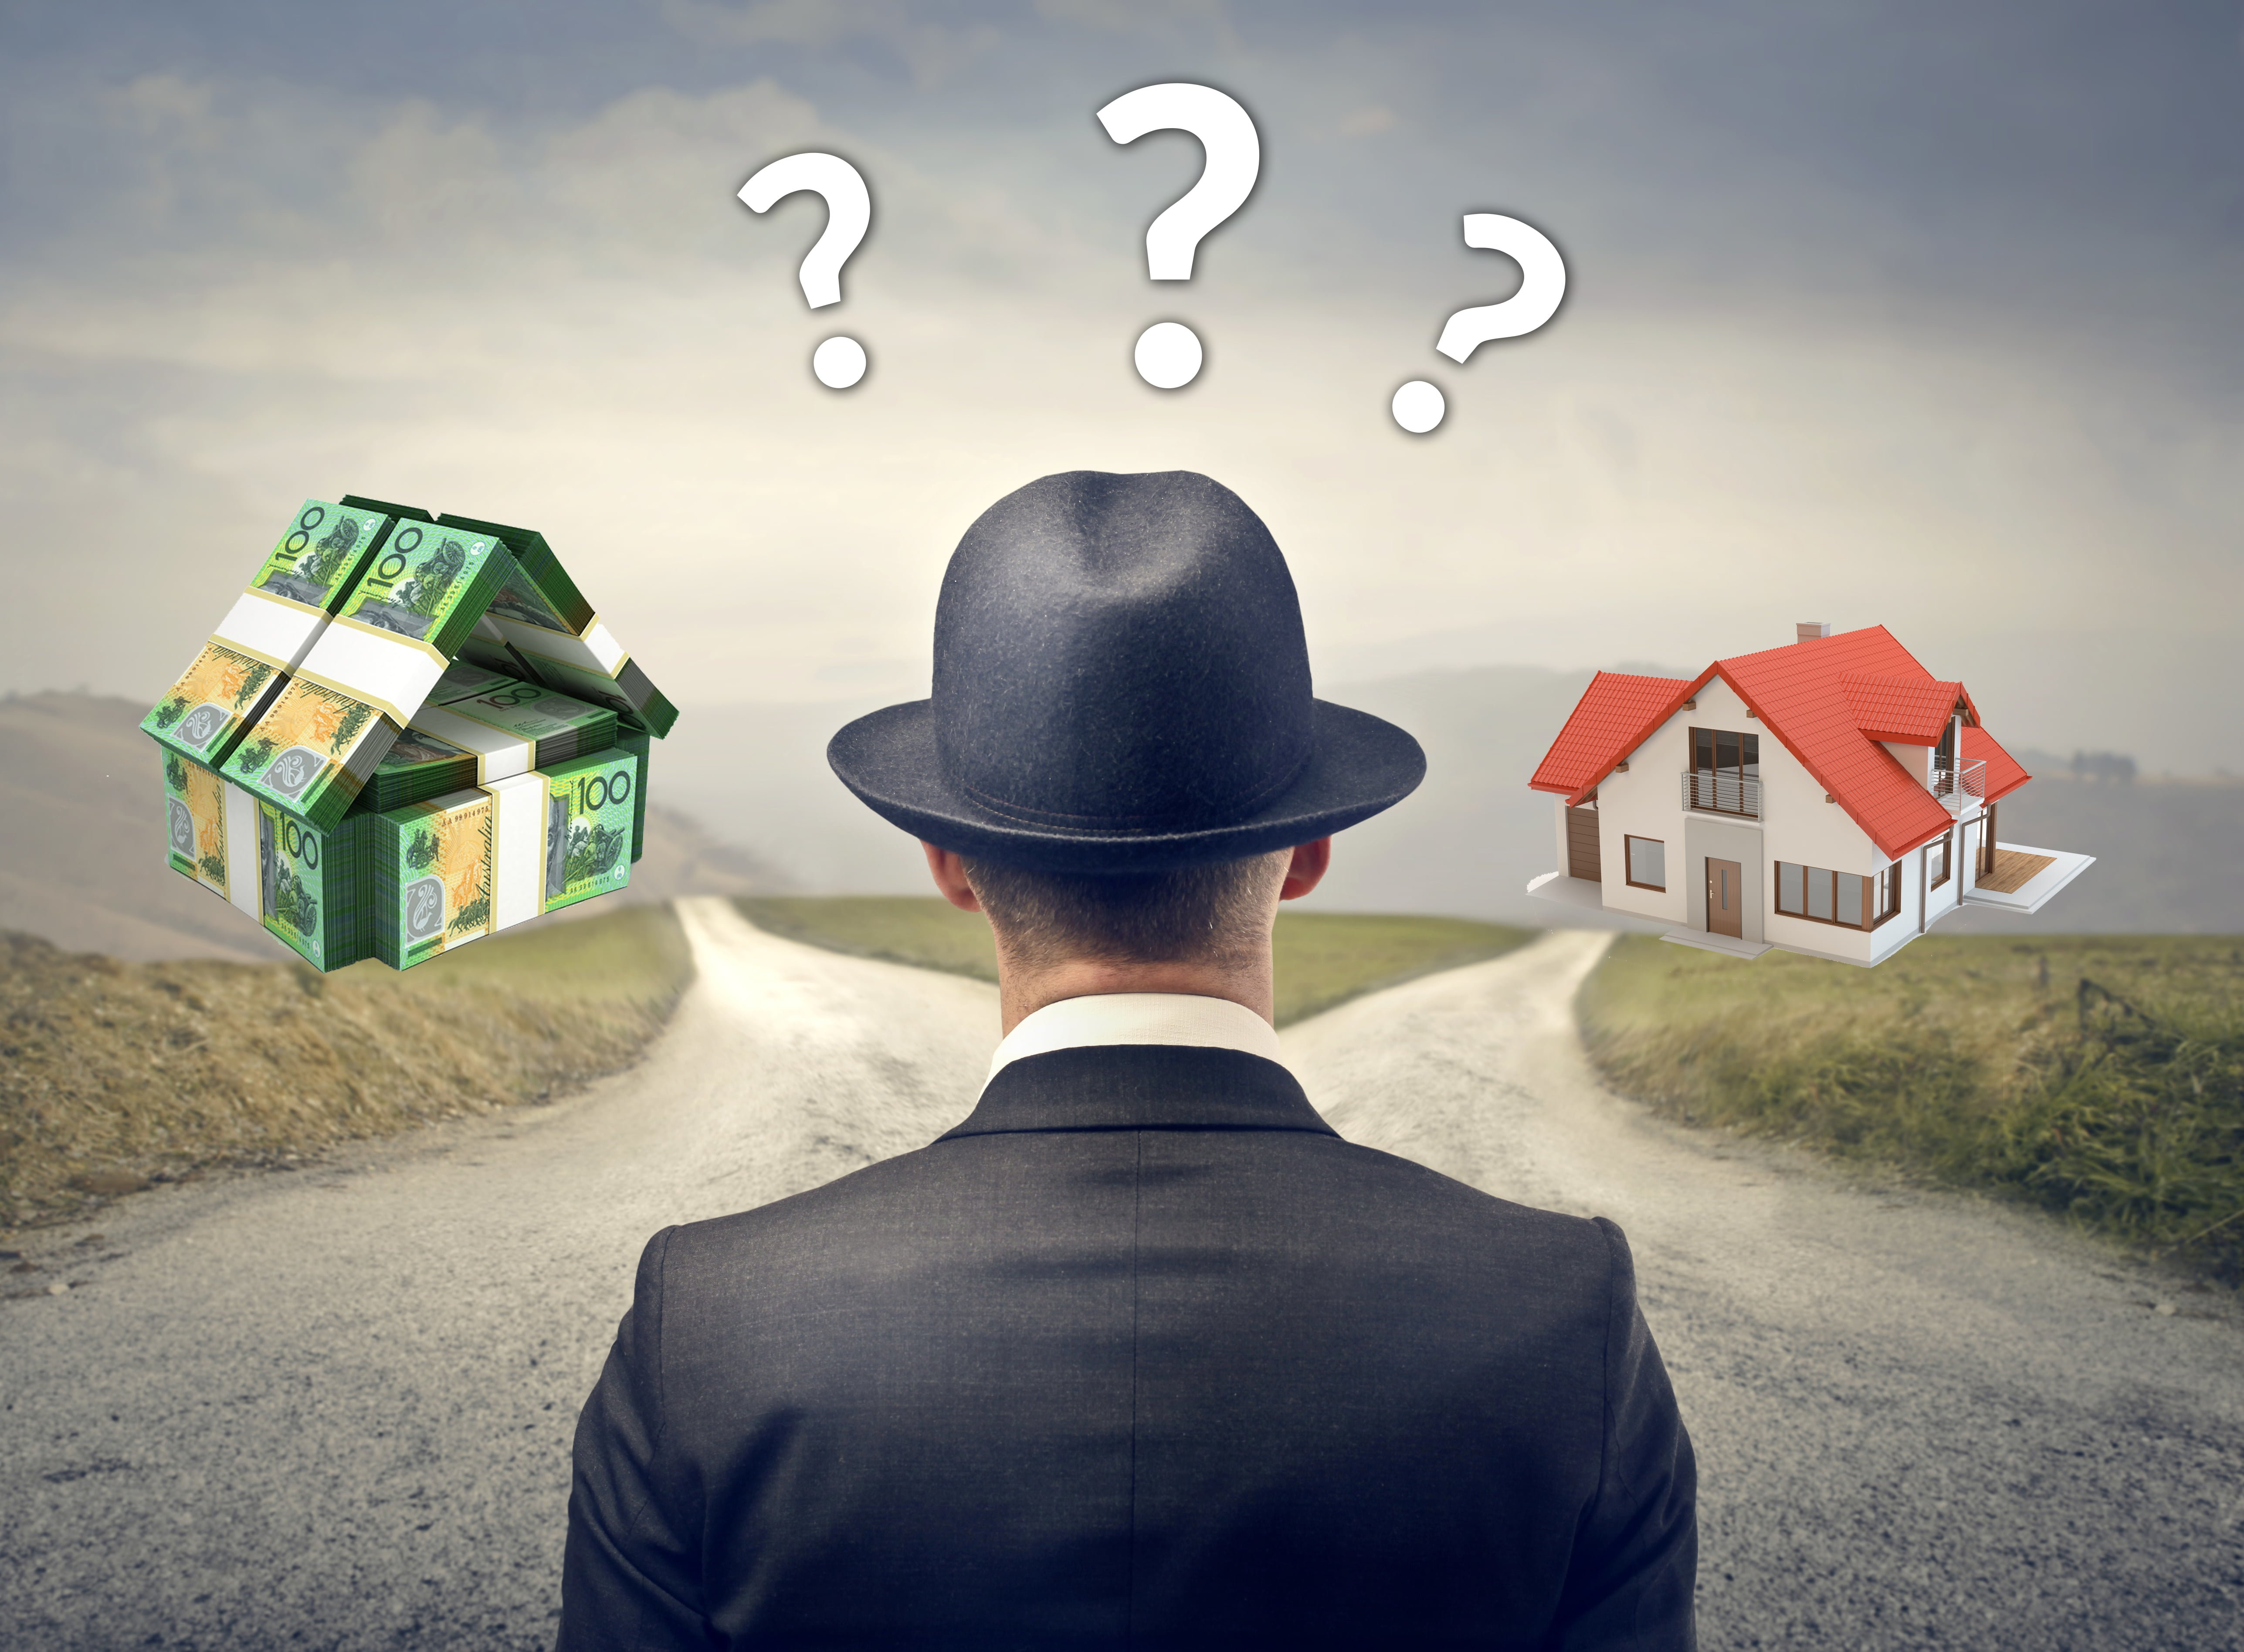 Investment Property or Home First?